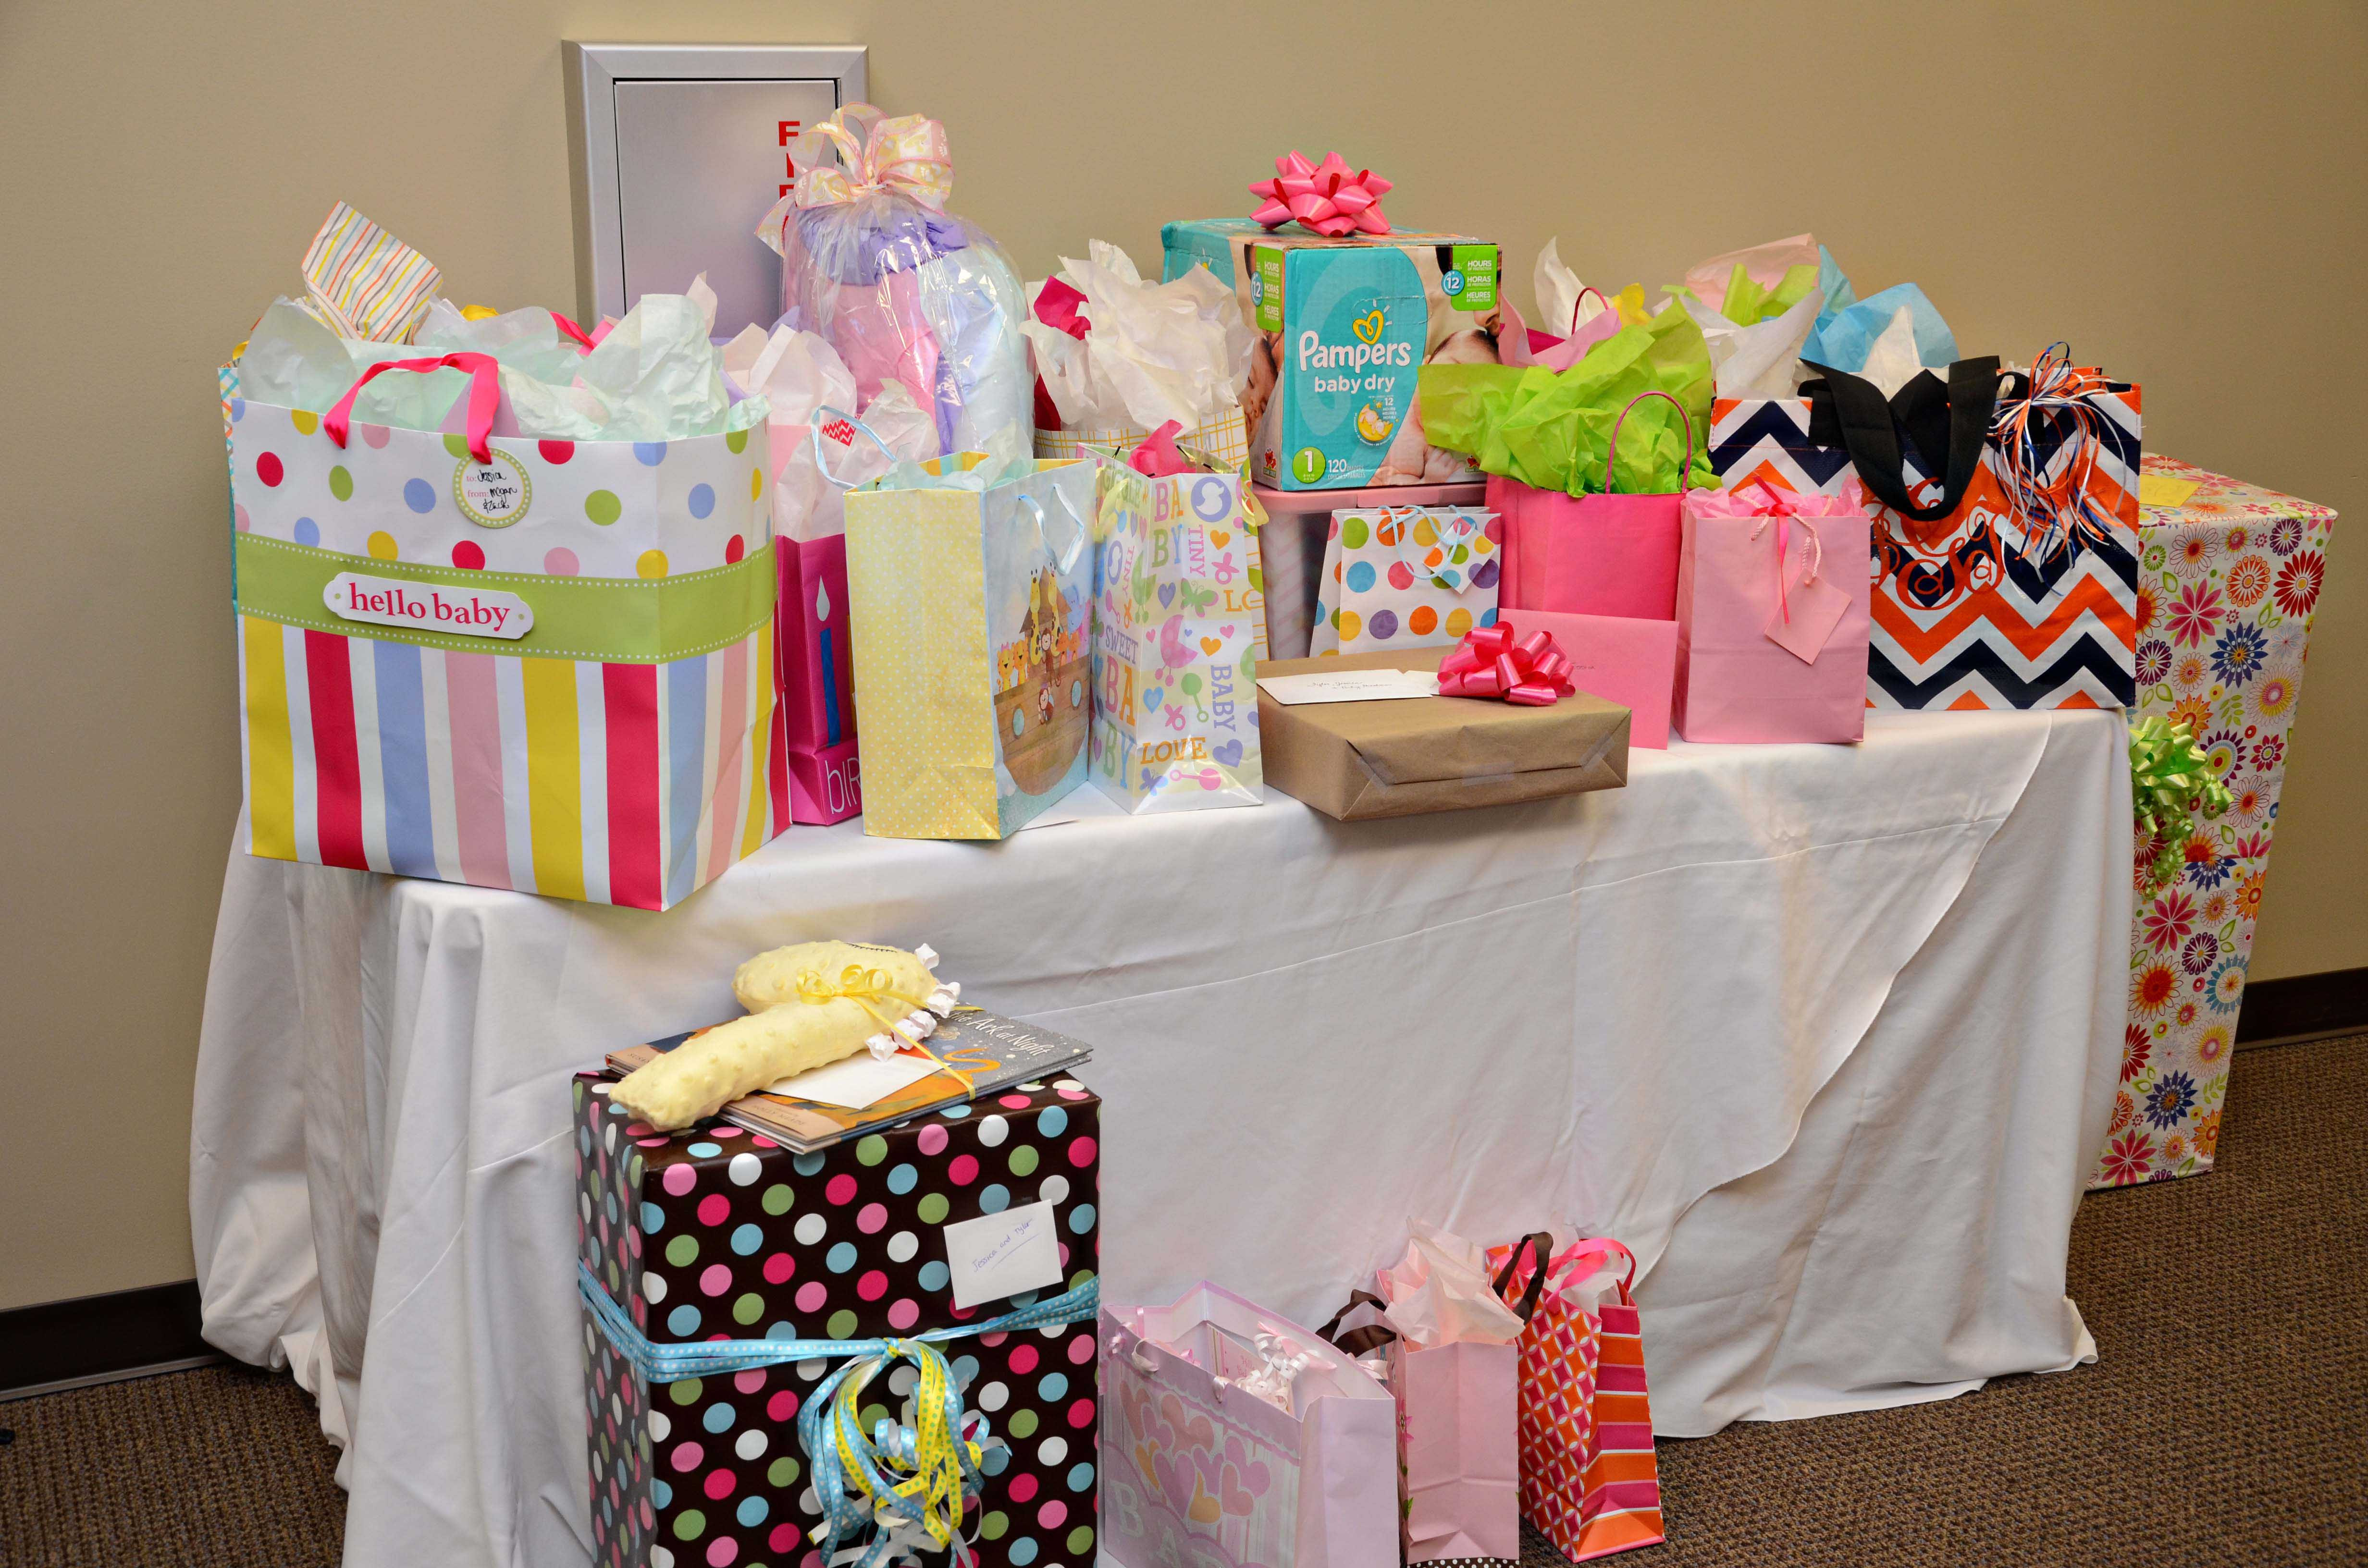 Best ideas about Gift Ideas For Baby Shower . Save or Pin Jessica's Baby Shower – warfieldfamily Now.